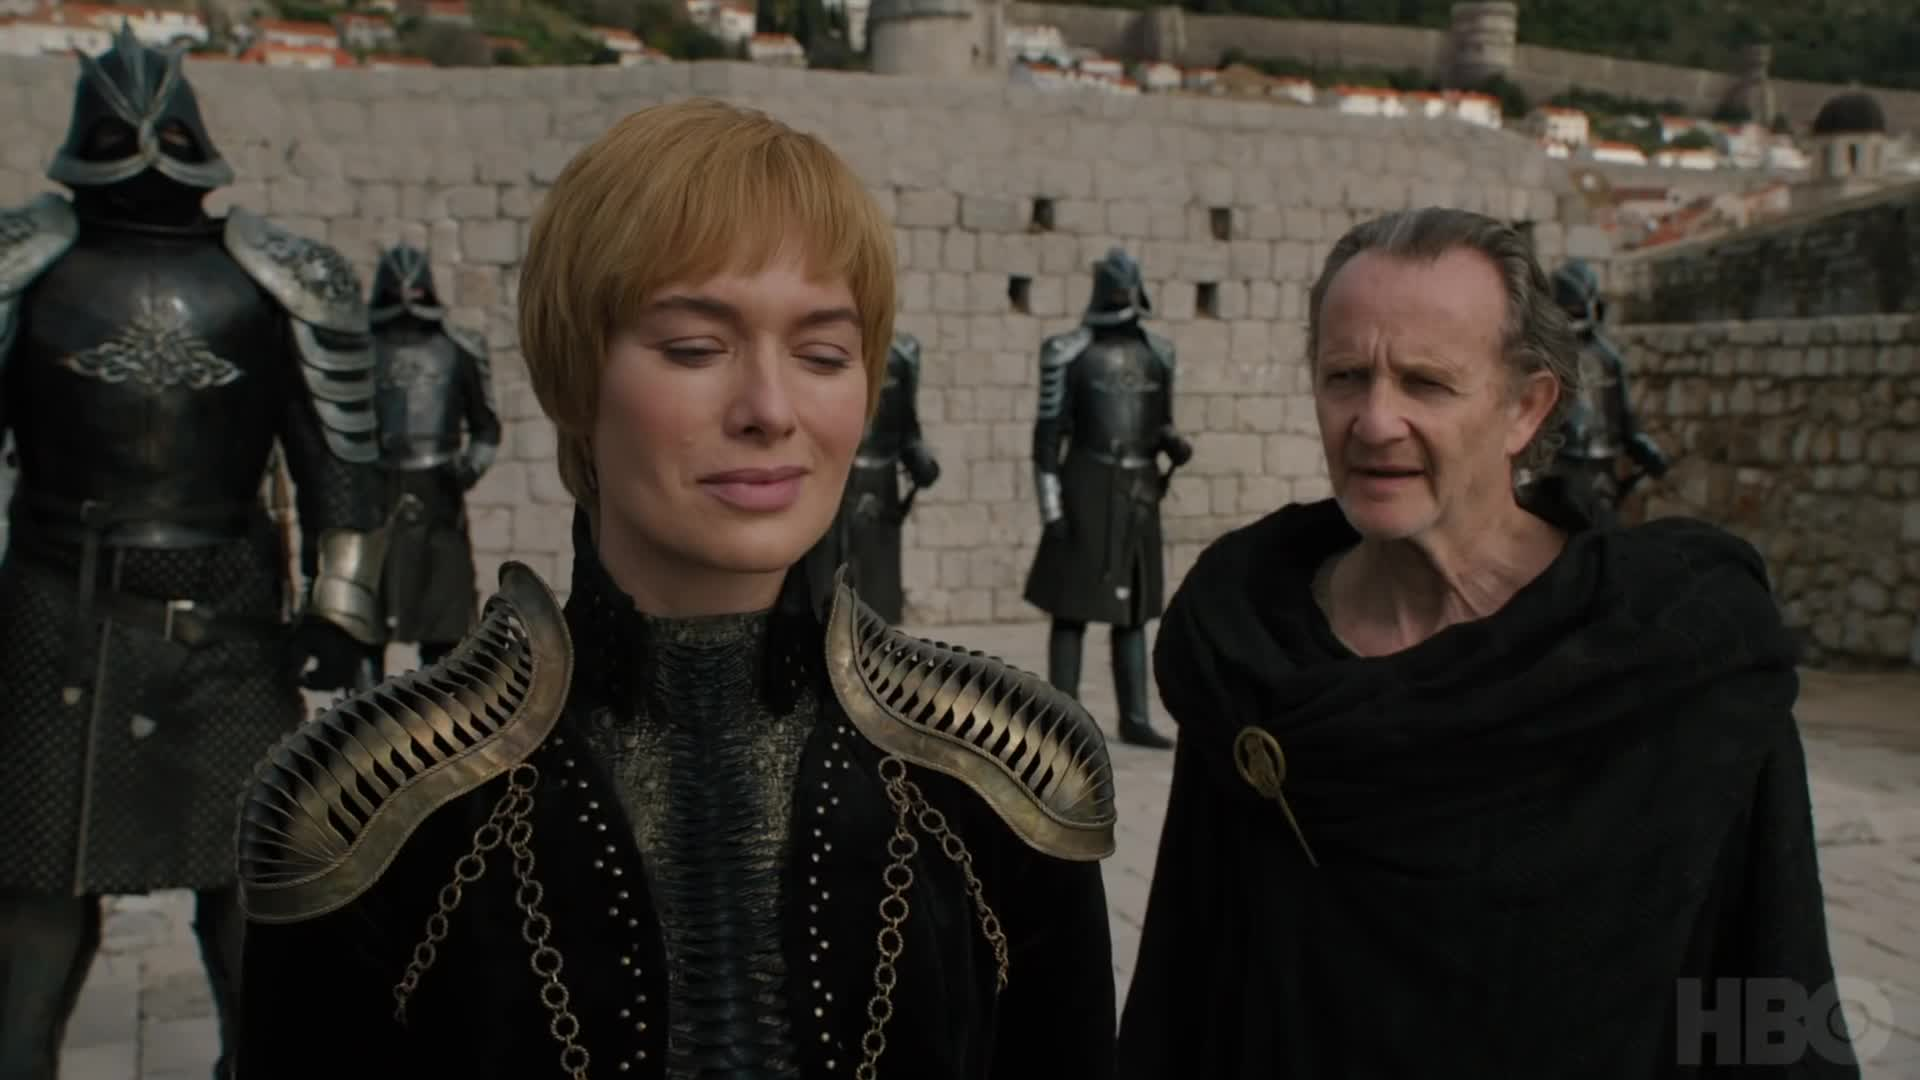 cersei lannister, game of thrones, gameofthrones, hbo, lena headey, season 8, television, Cersei Game of Thrones GIFs